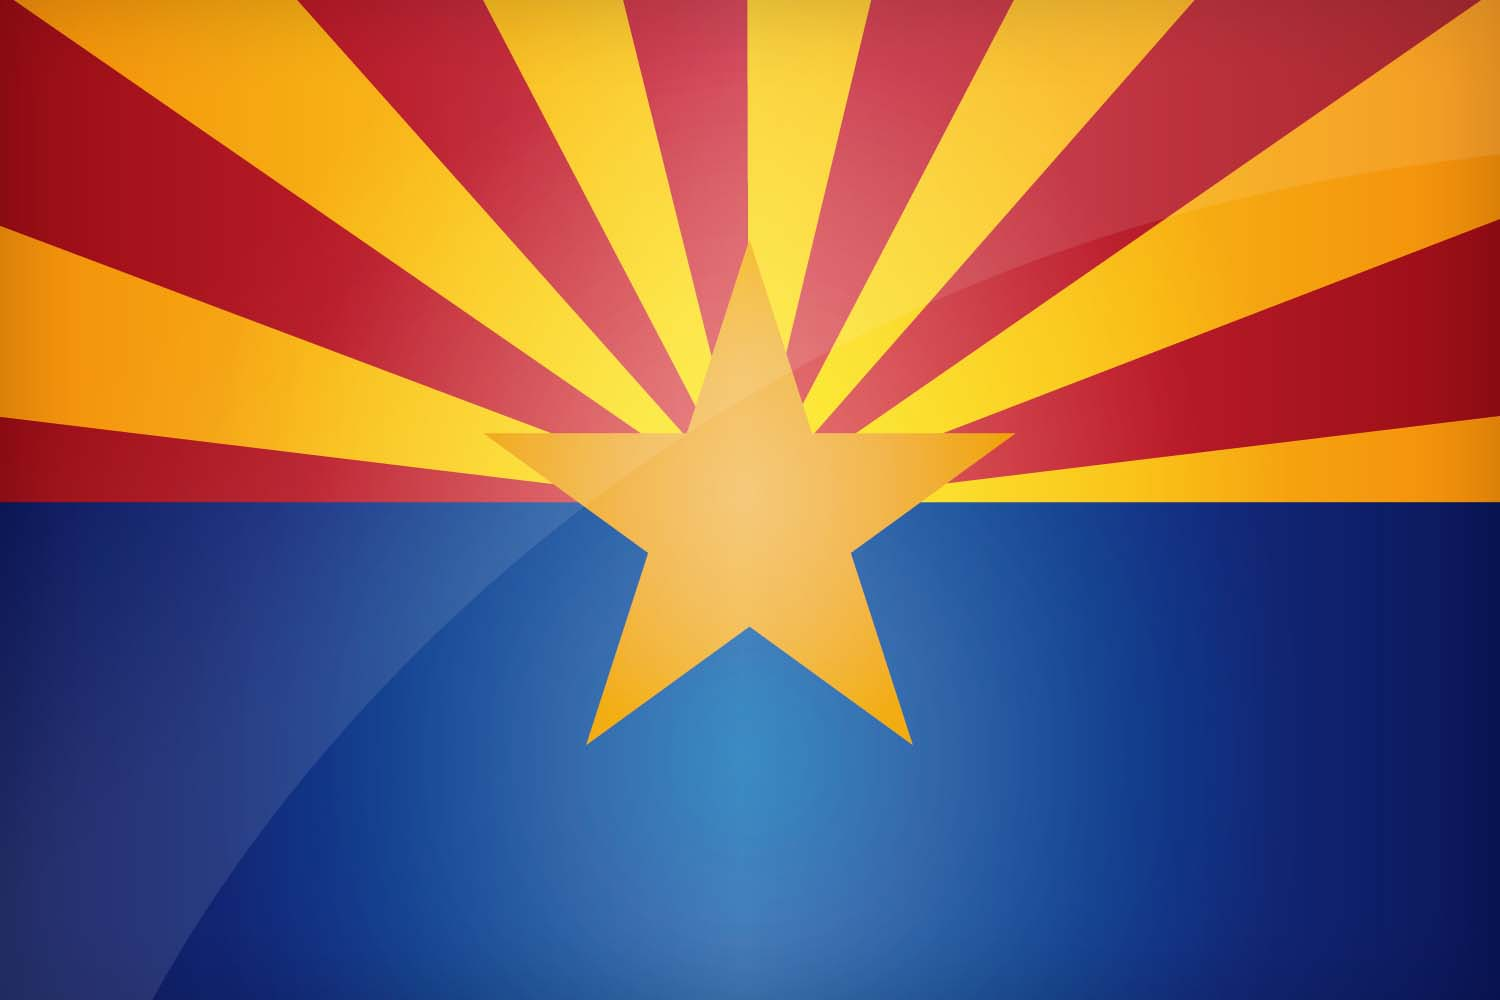 Arizona's state flag